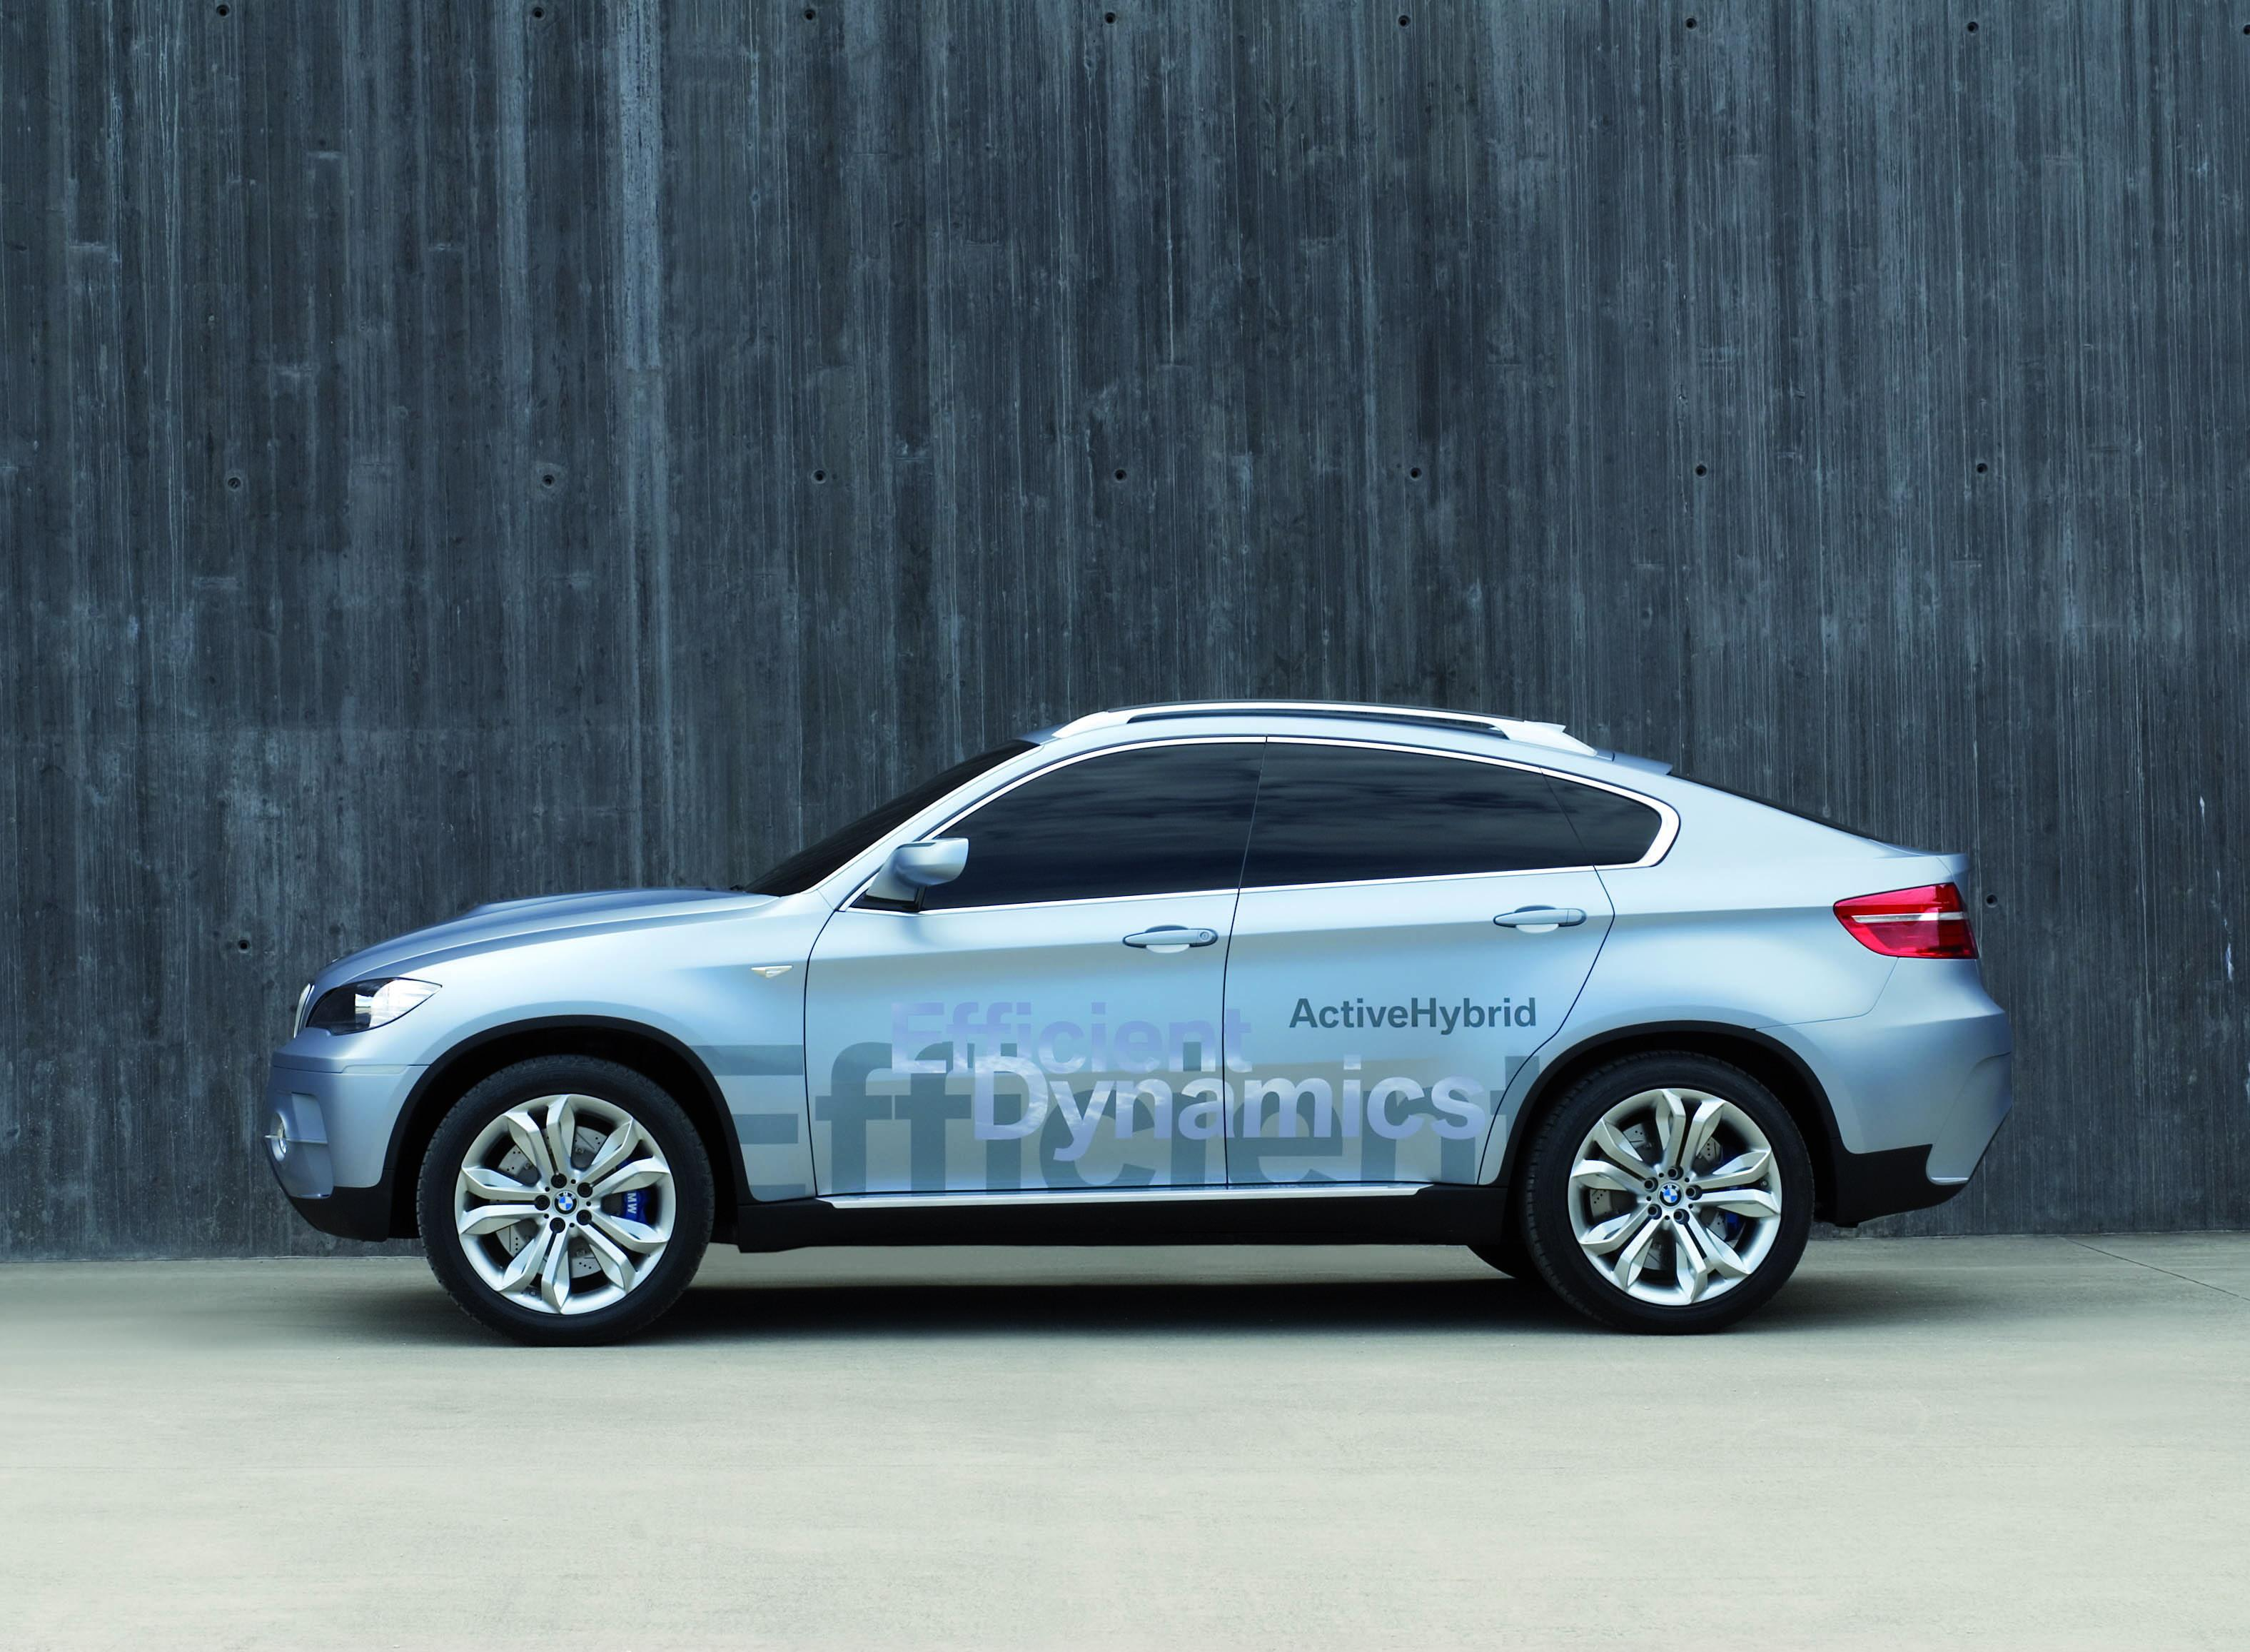 2008 BMW Concept X6 ActiveHybrid Review - Top Speed